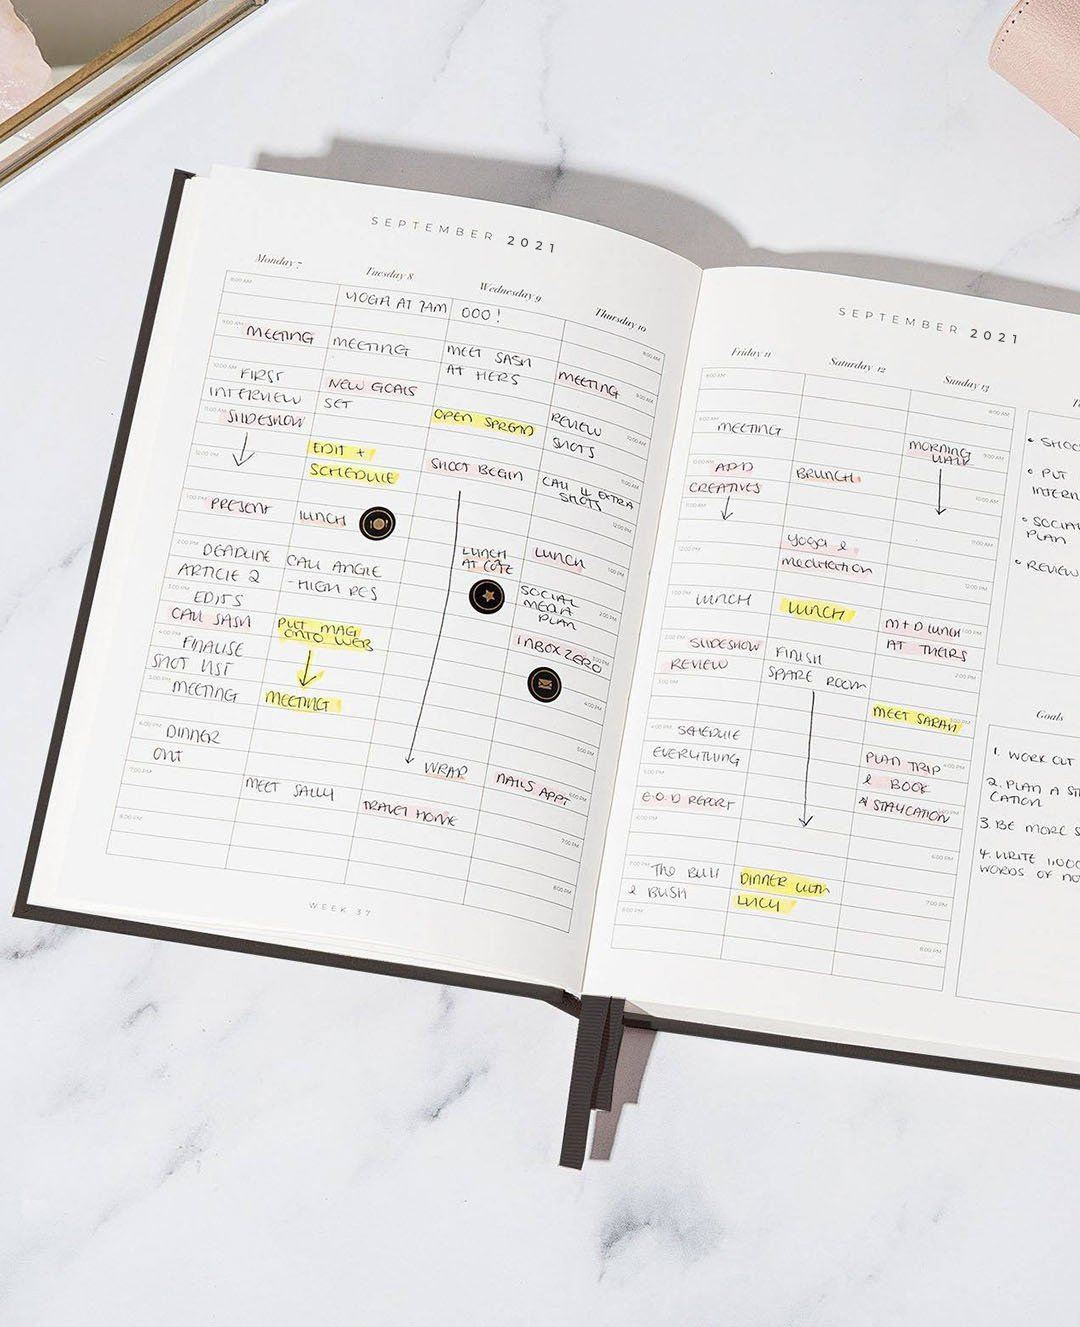 2021 Diary Goals - CGD LONDON